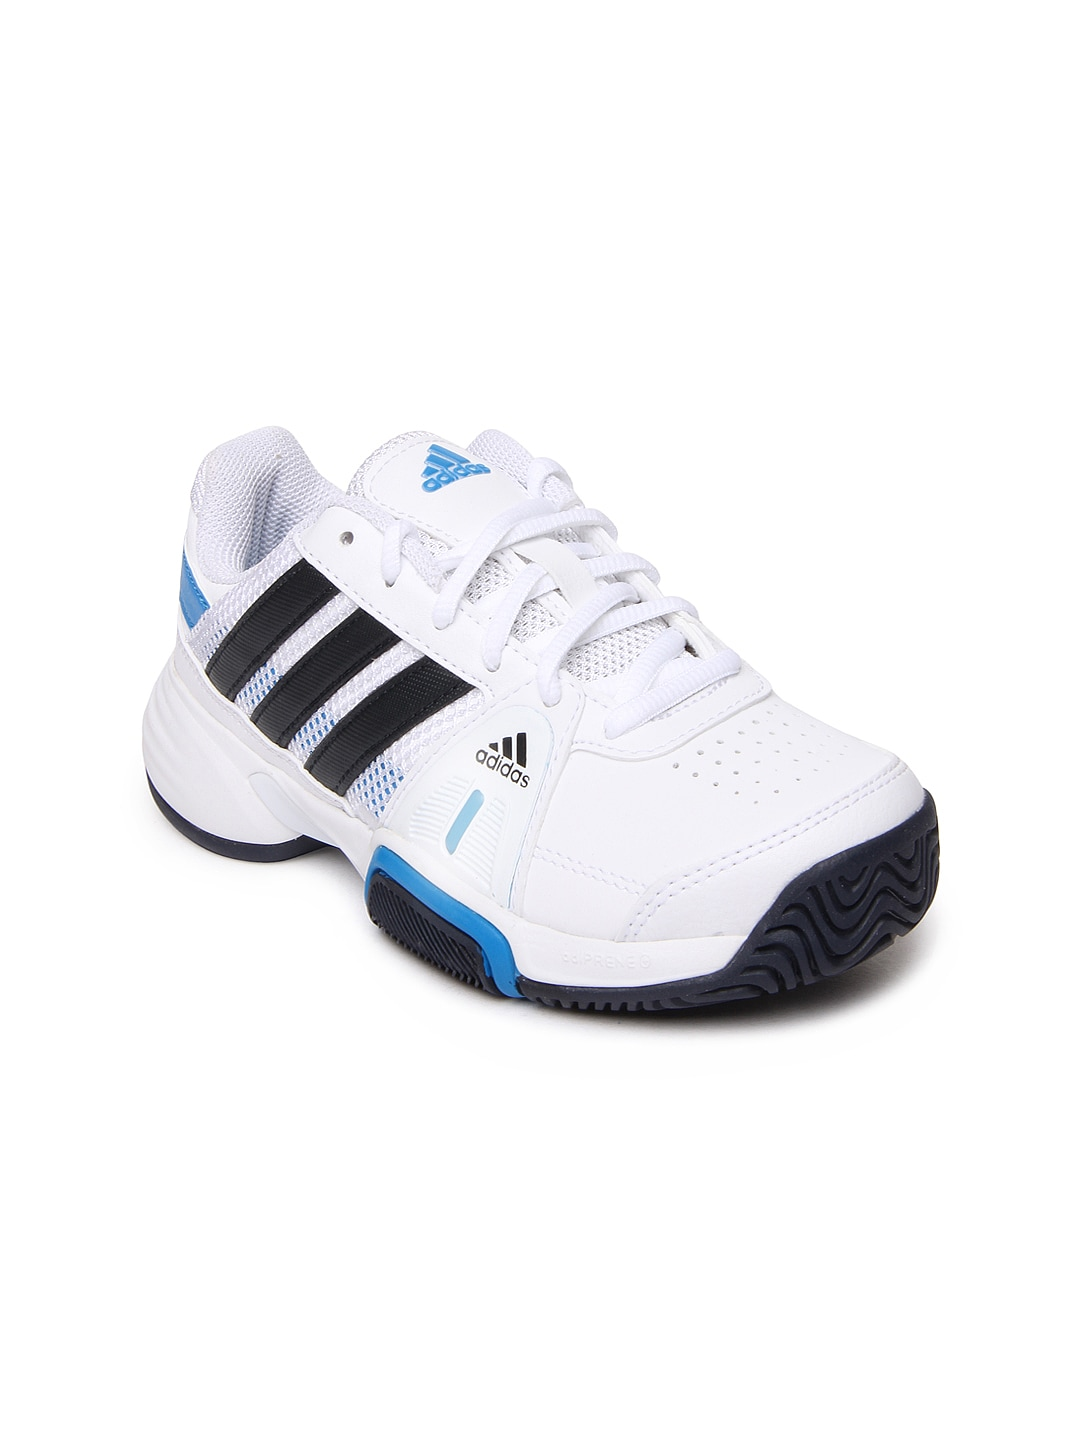 adidas sports shoes sale online